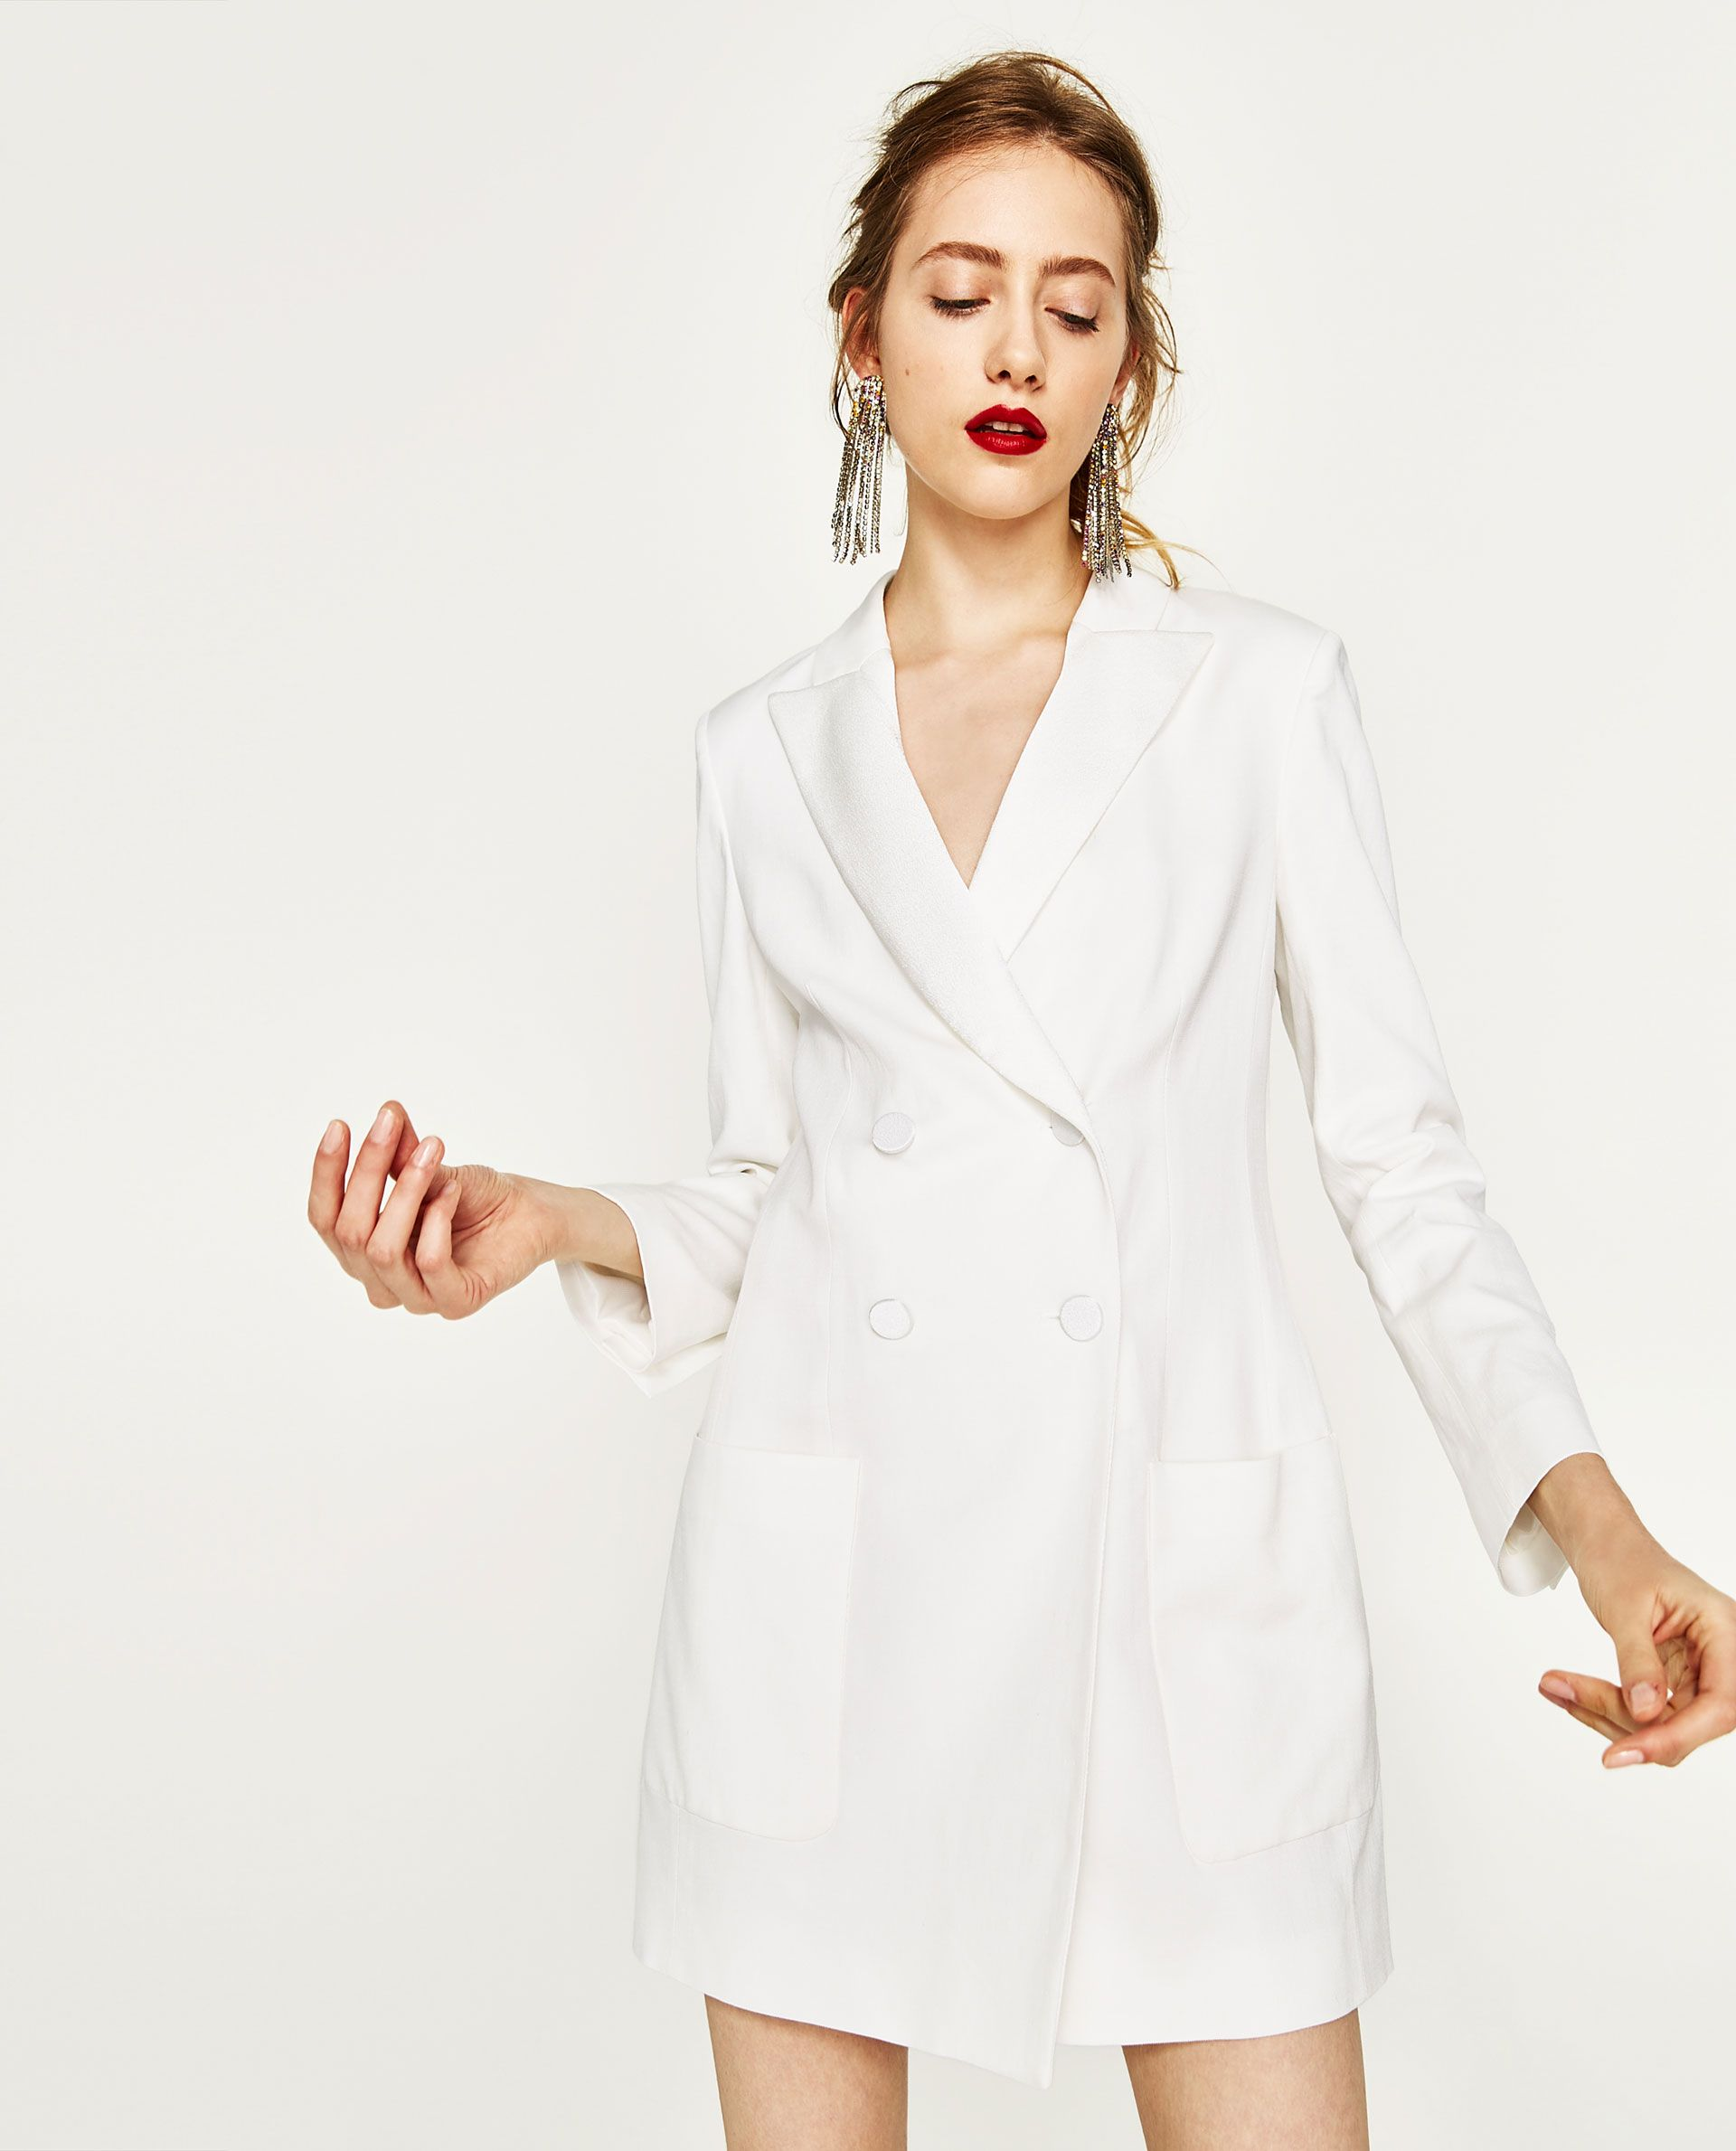 Long double breasted jacket s t y l e pinterest shopping